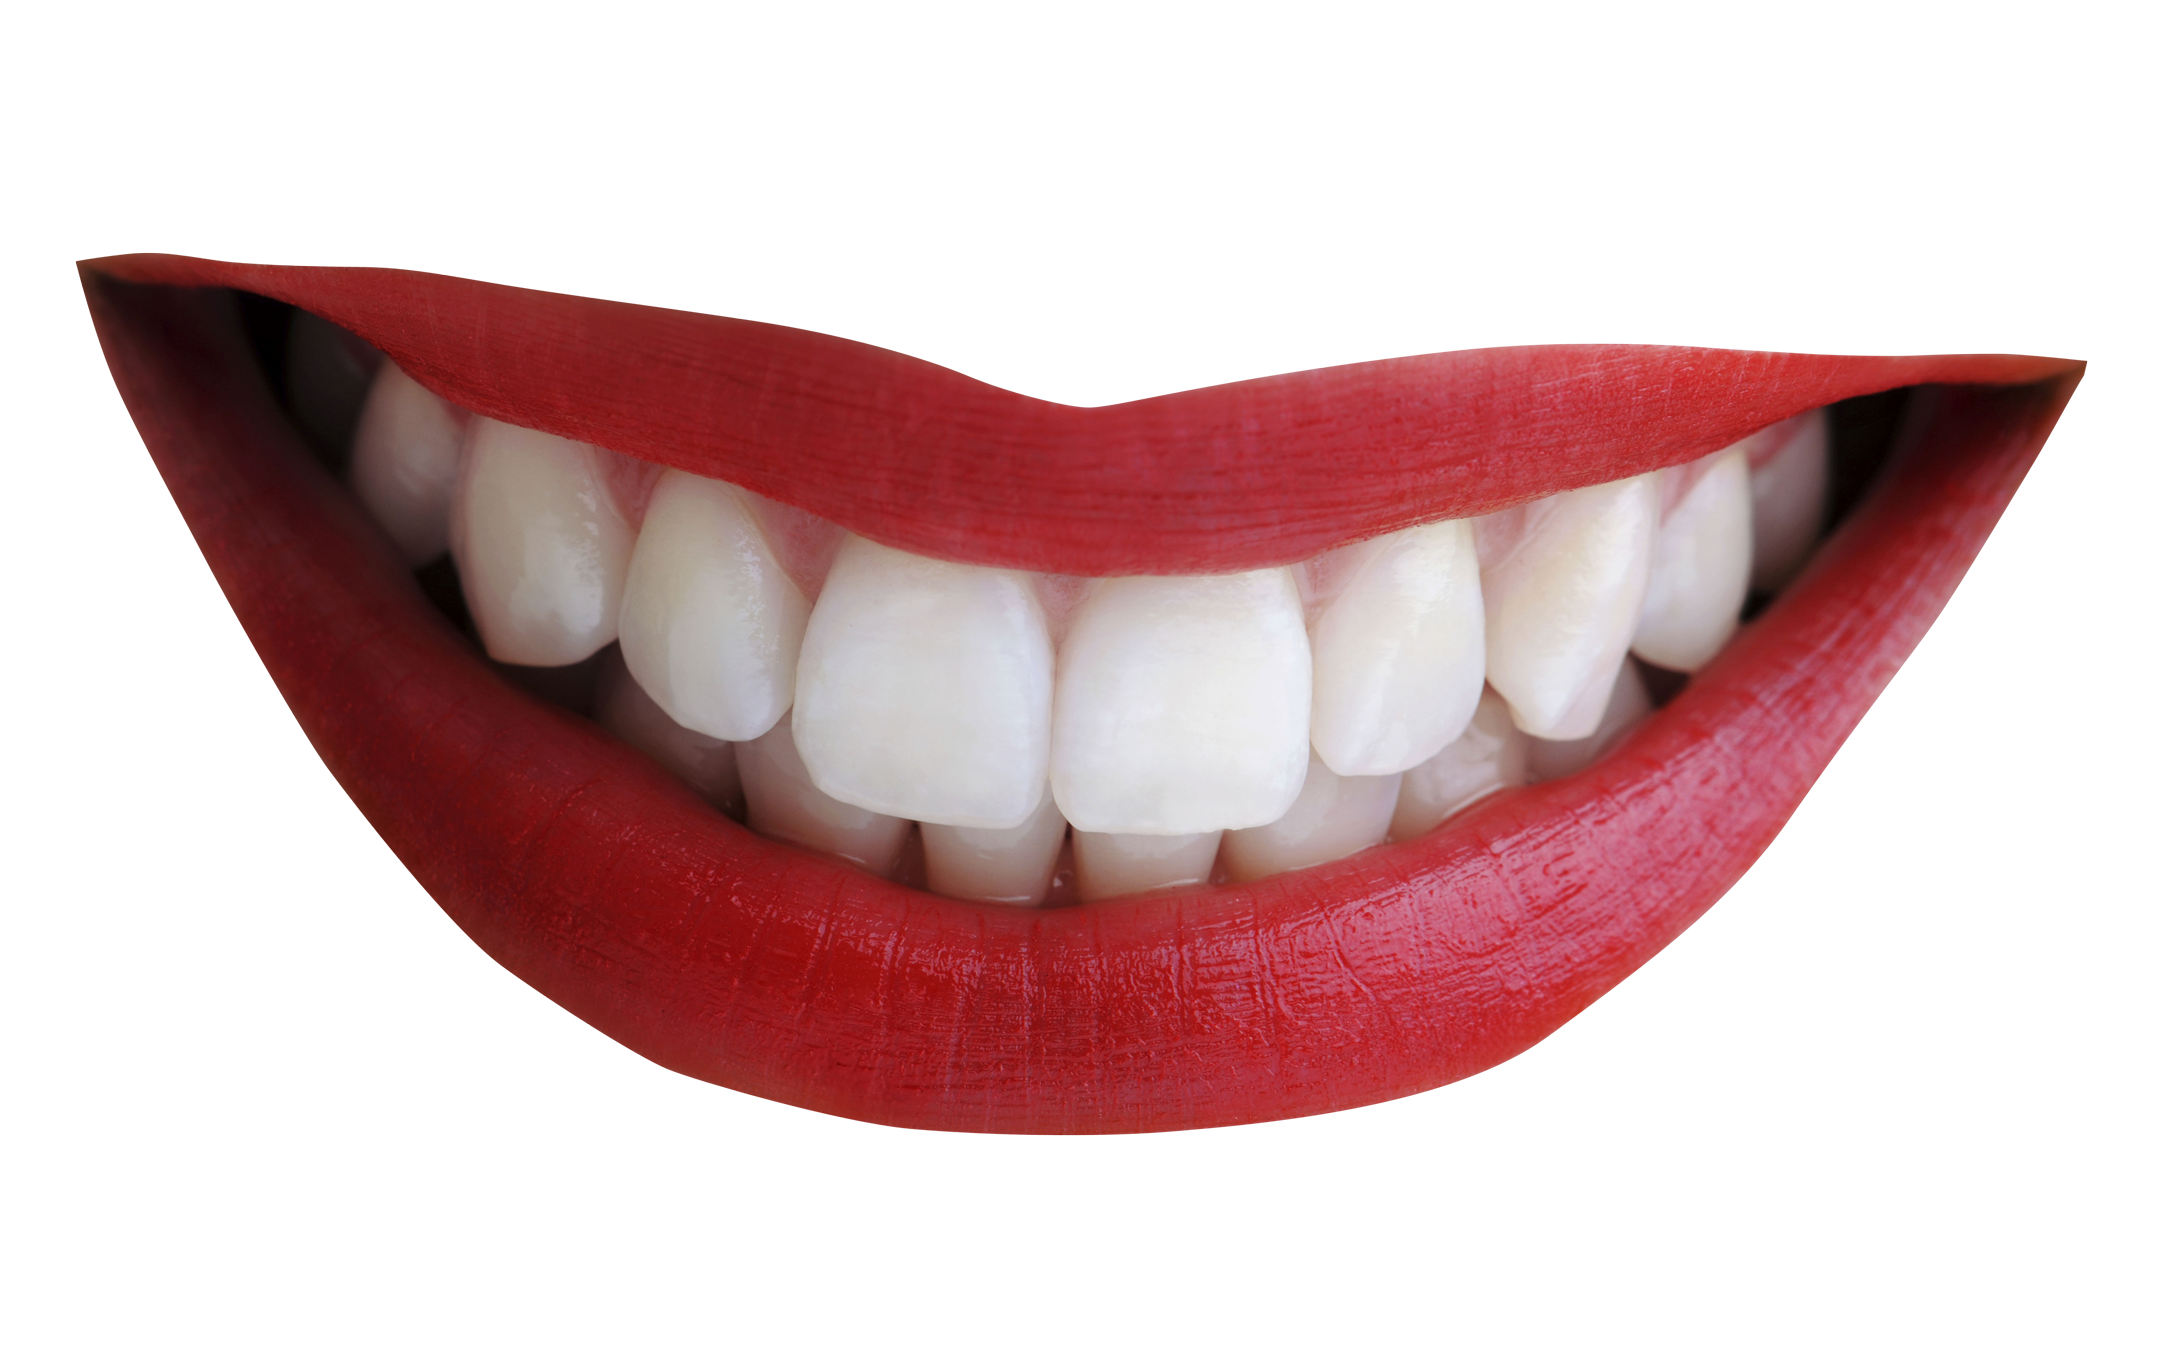 smile lips png transparent smile lips images pluspng #17315